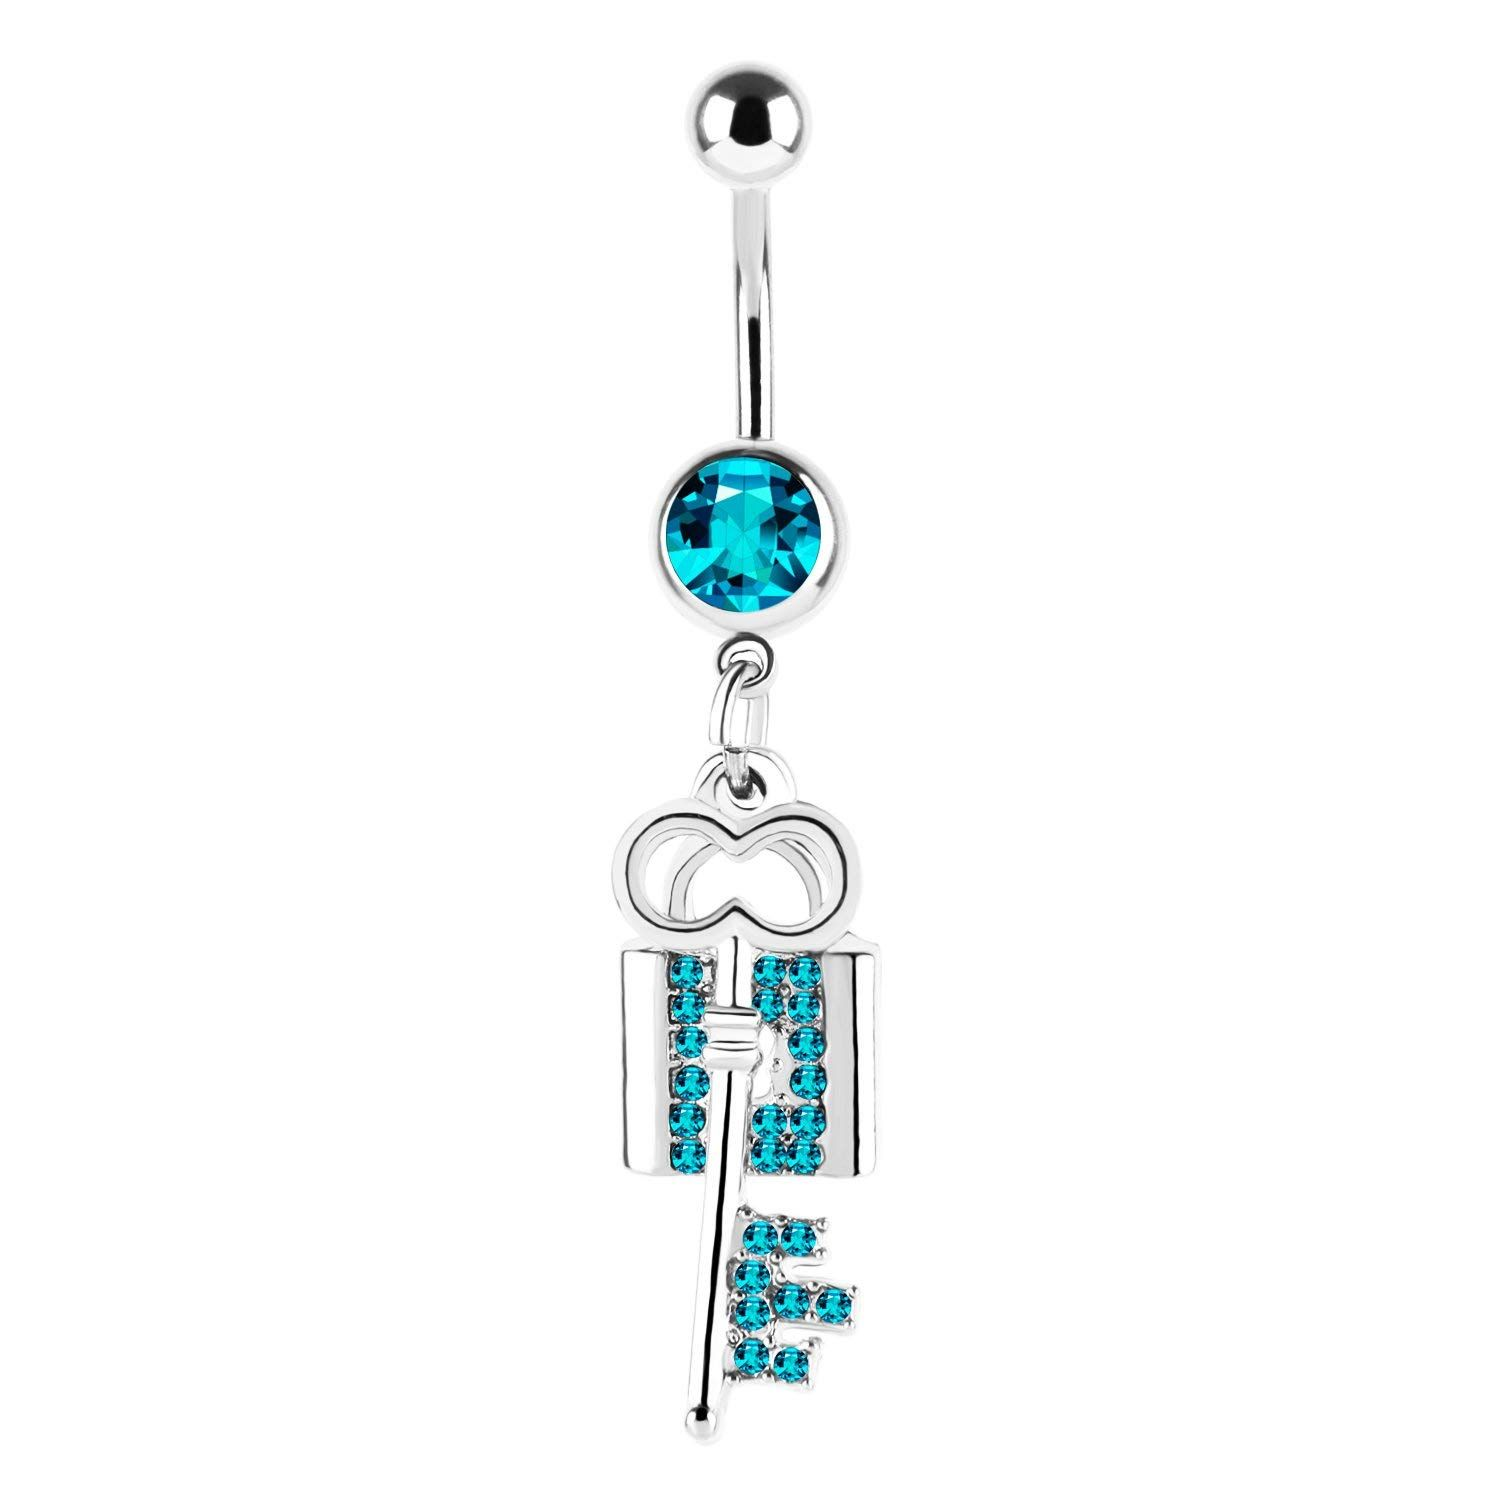 CABBE KALLO Belly Button Rings G Key and Lock Navel Rings